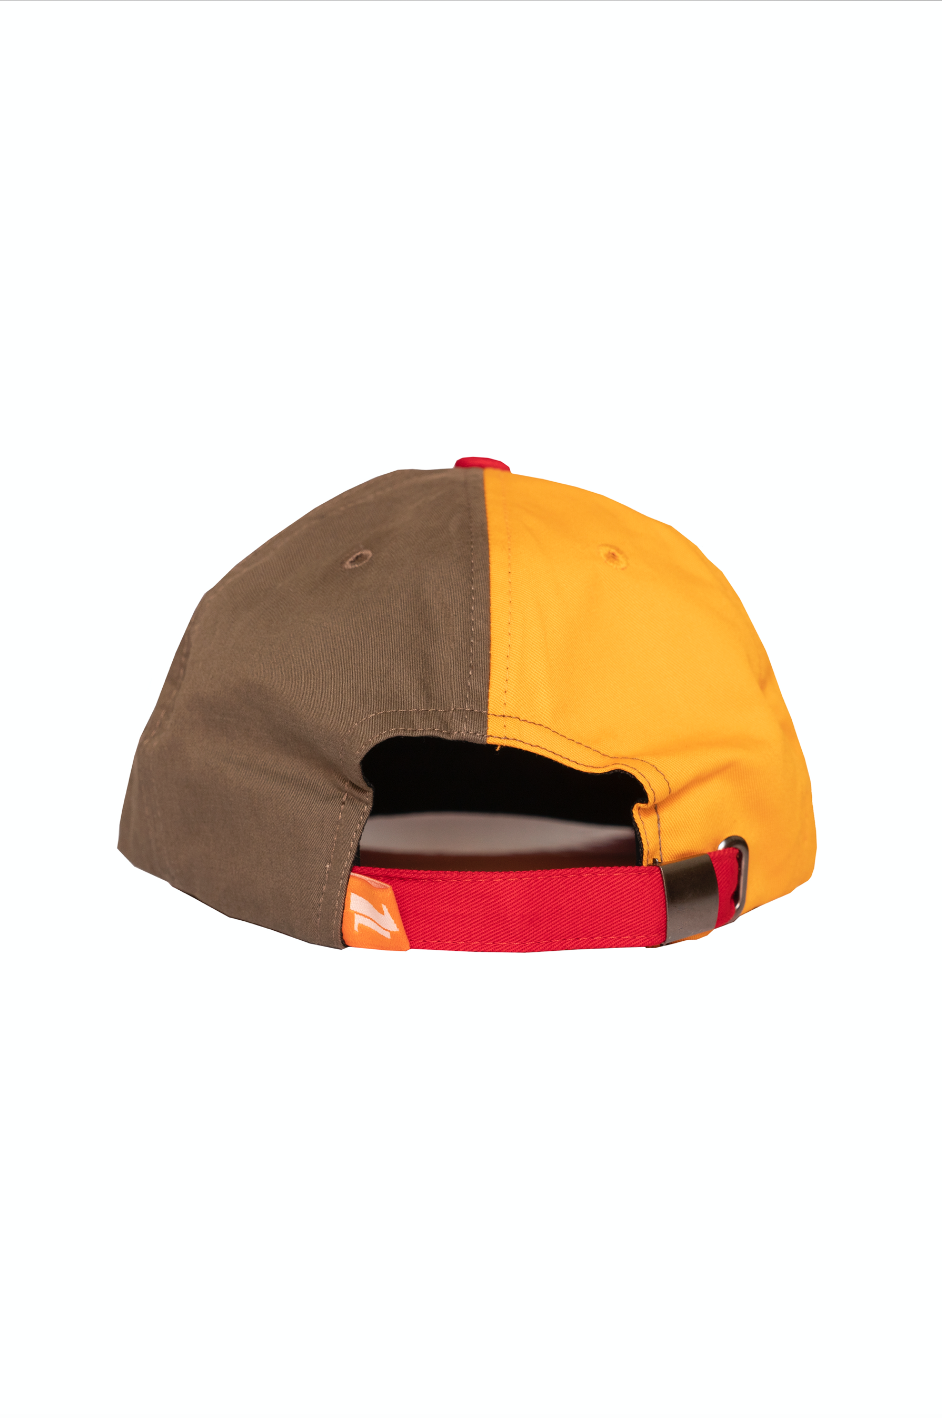 The Legits - Polo Hat (Tricolor)